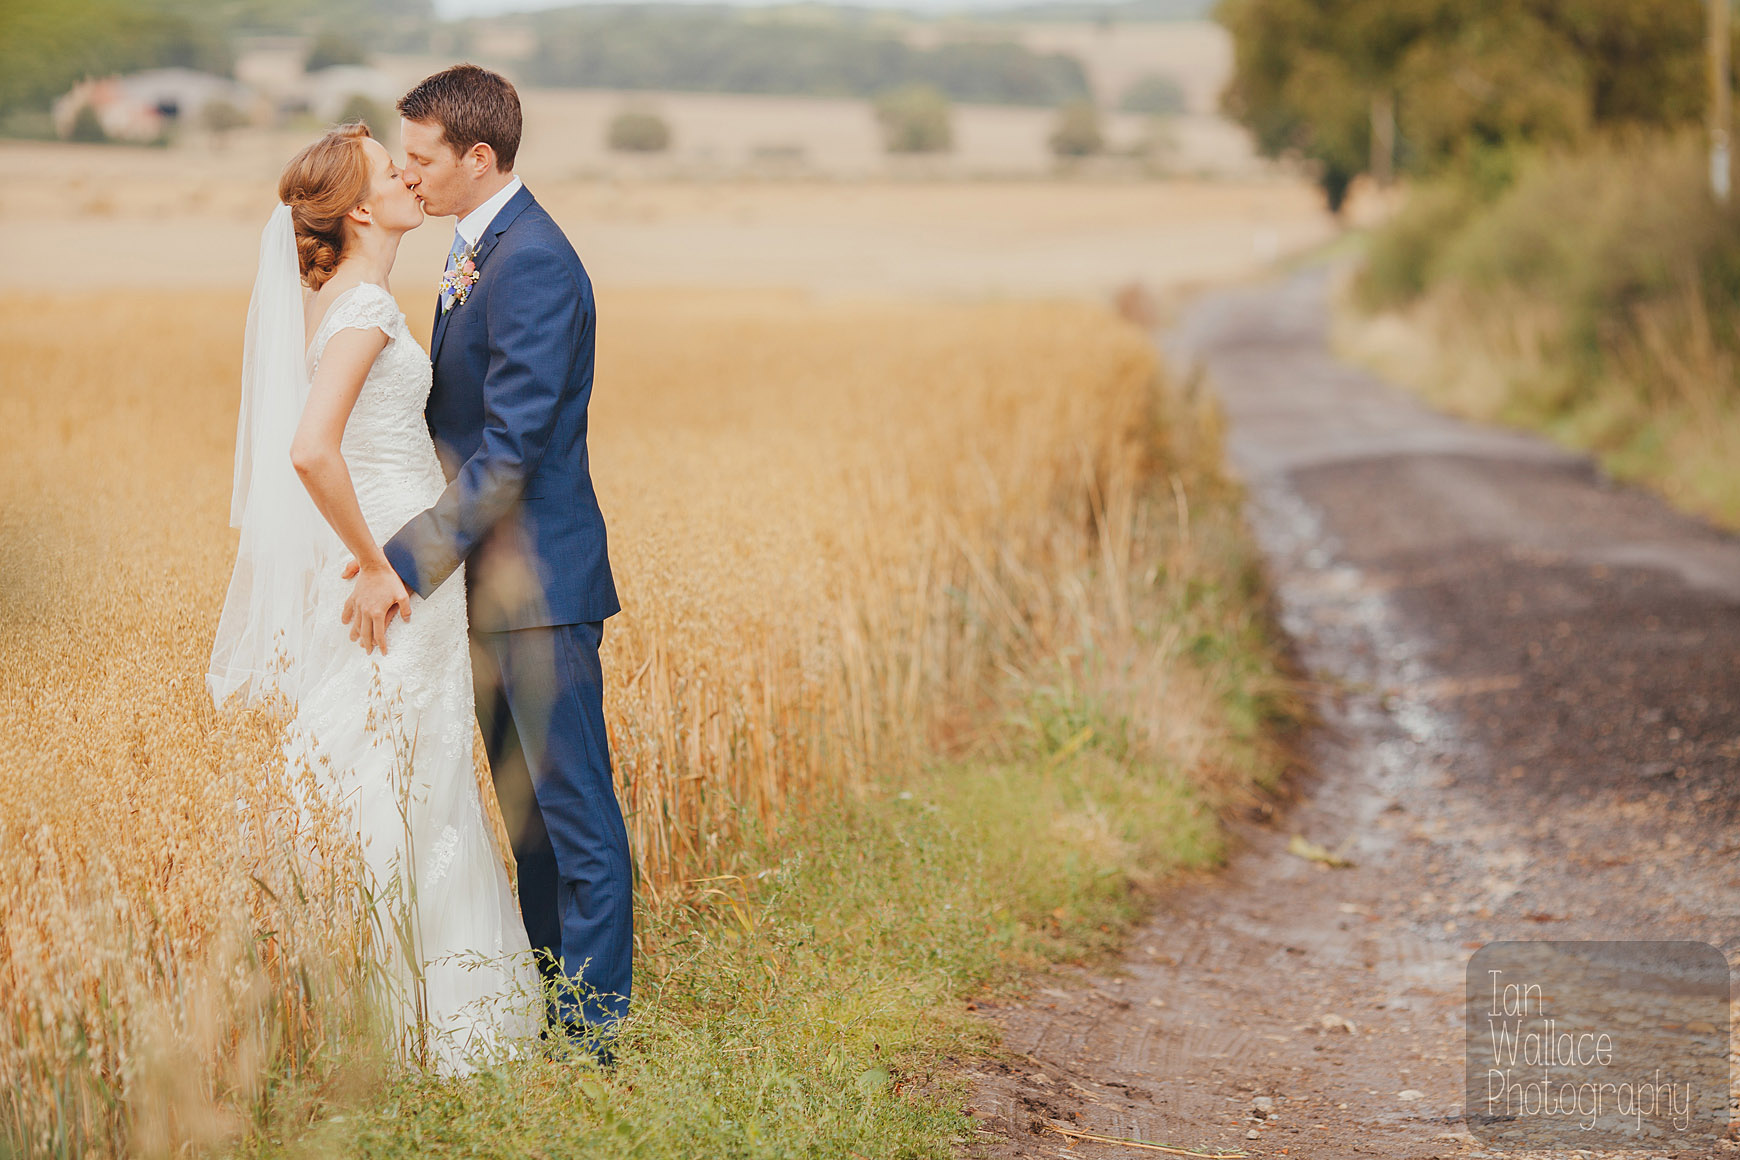 Couple kissing against a corn field and a dirt track